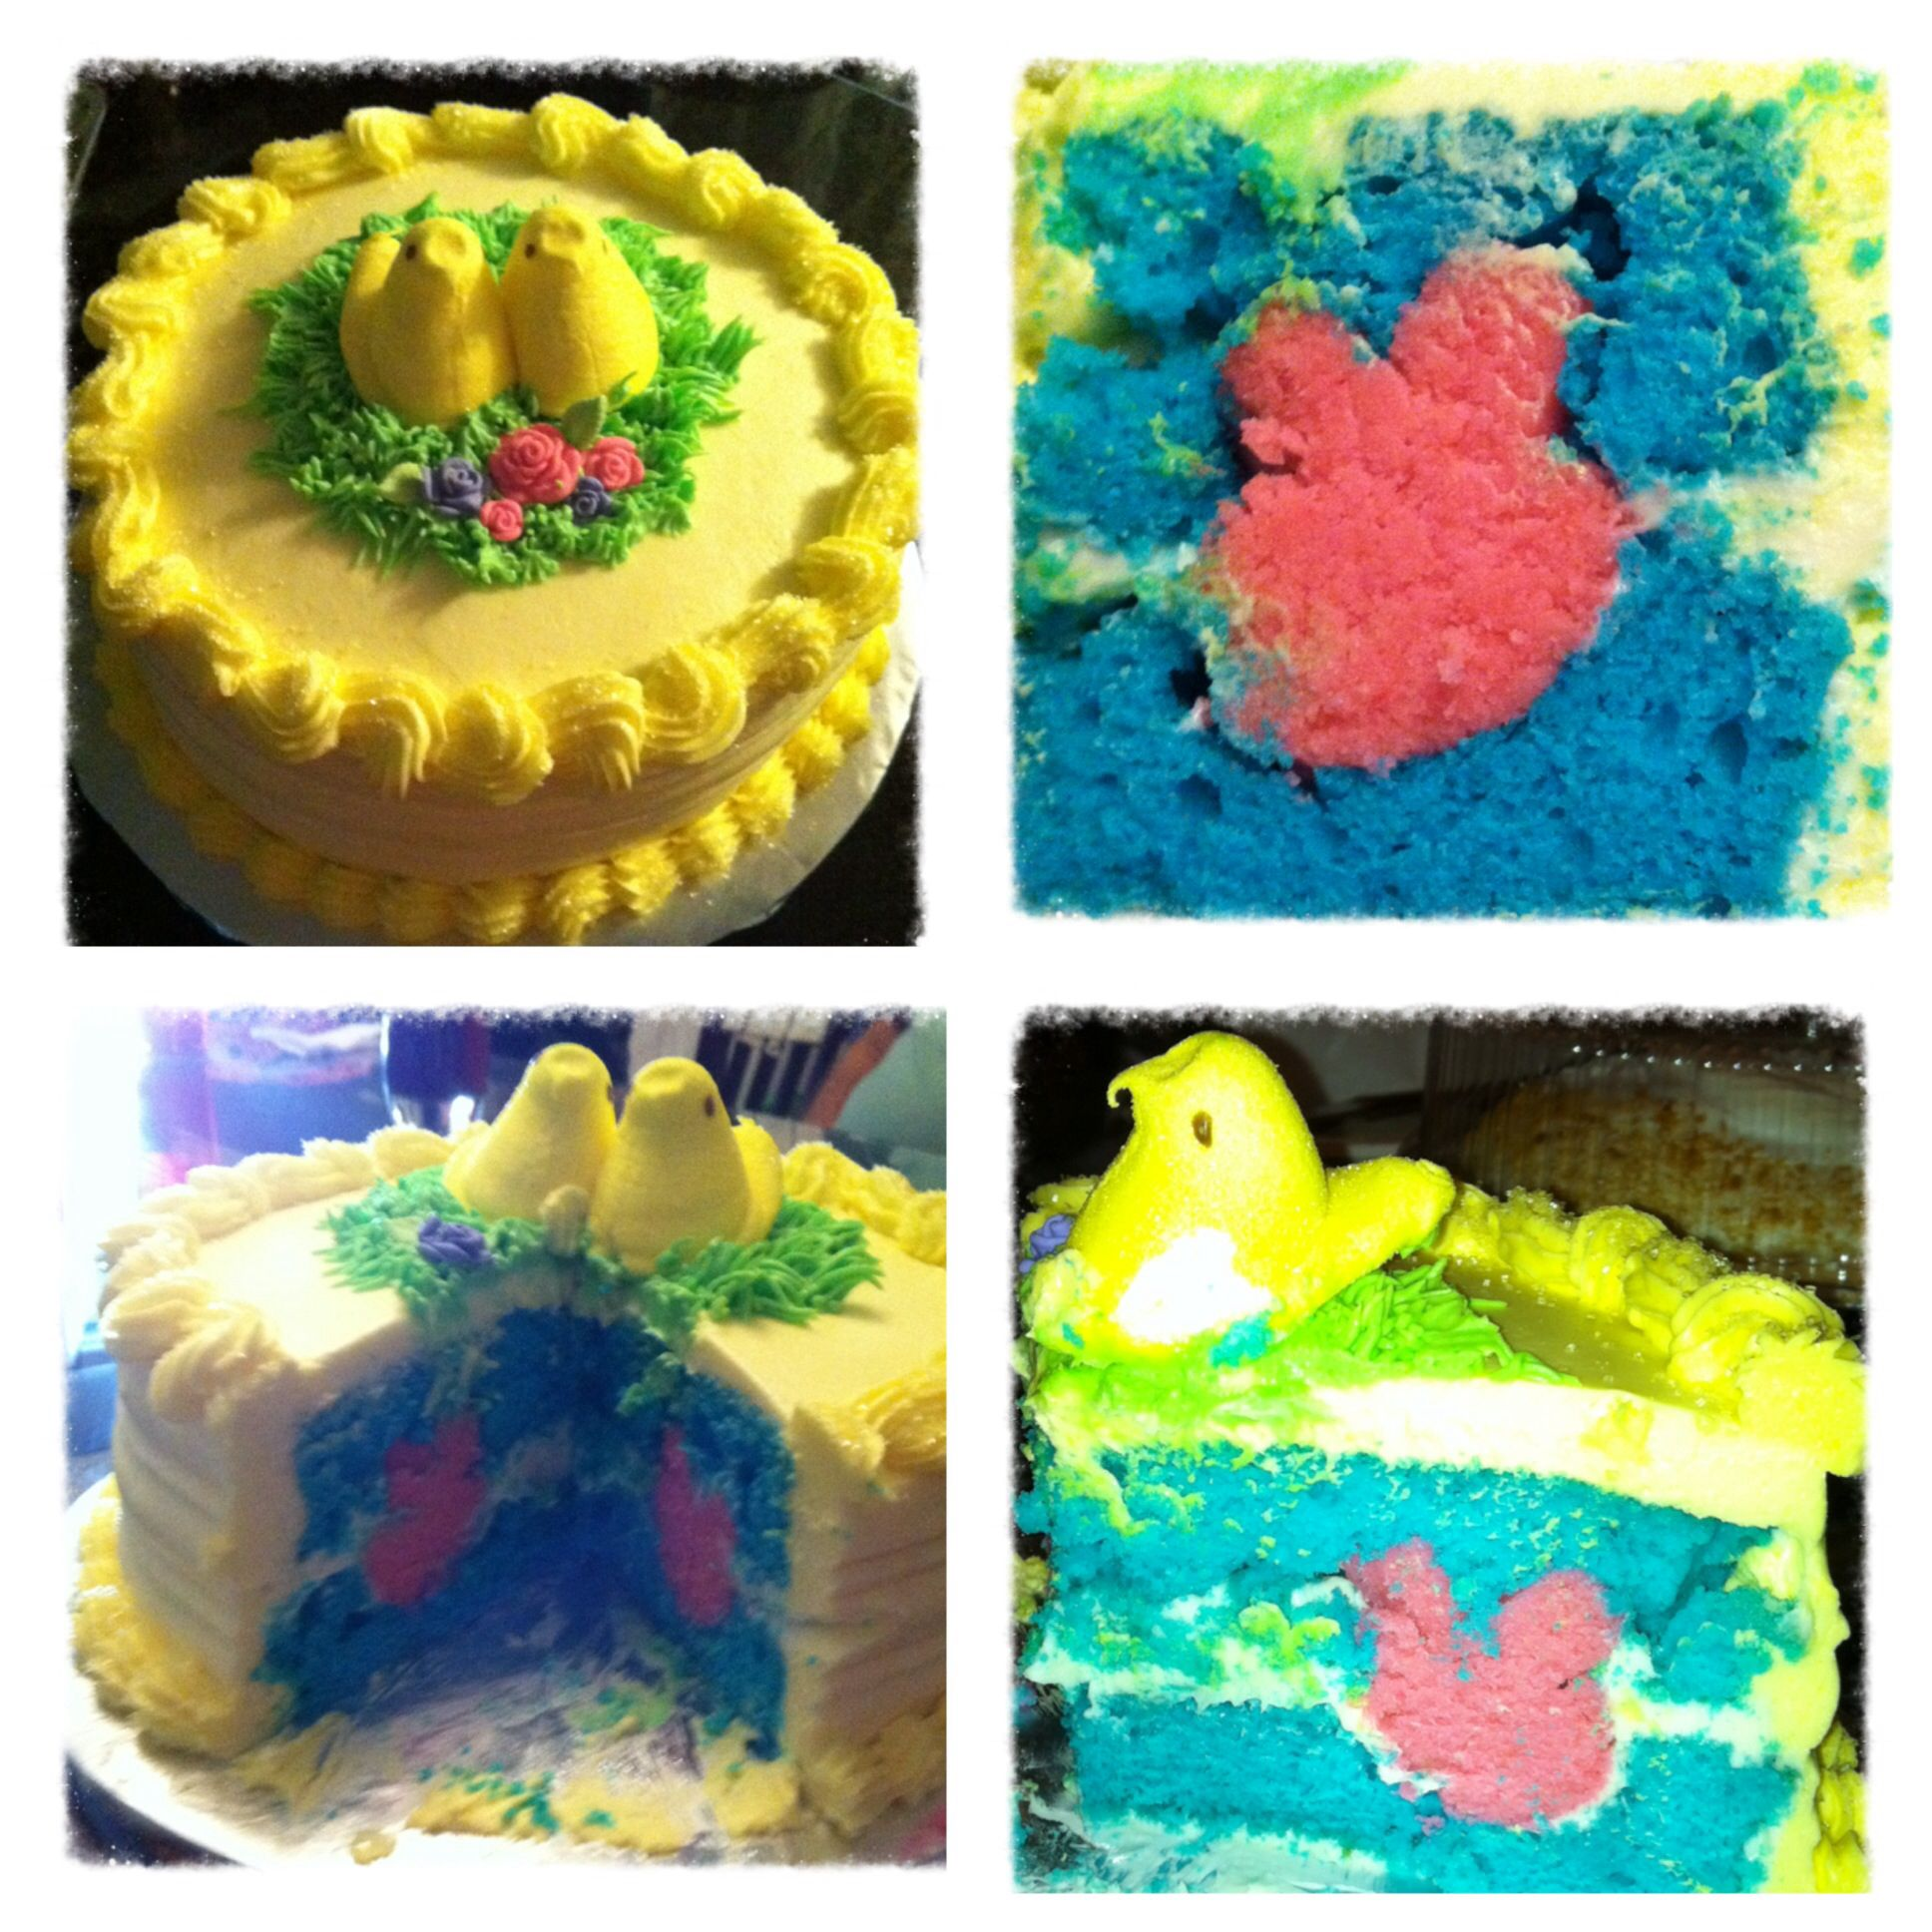 Easter surprise cake!